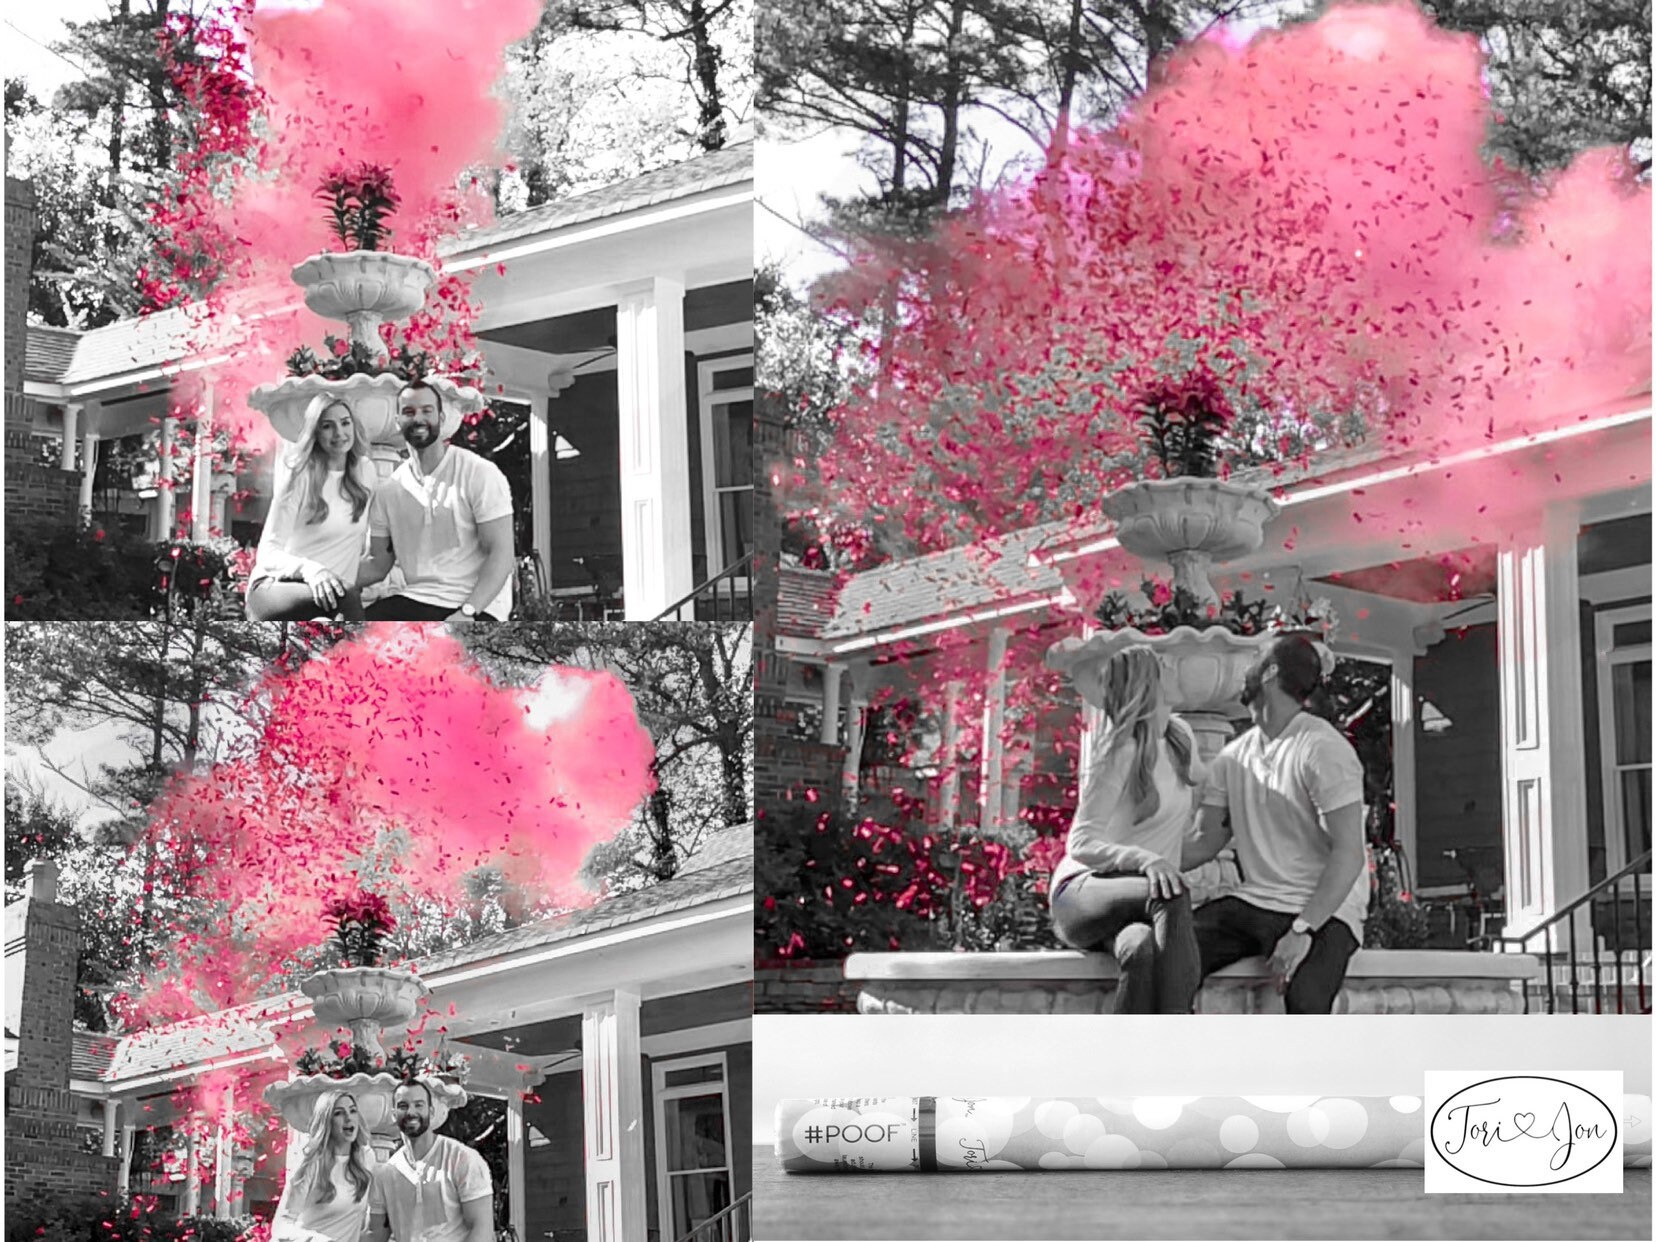 Pink! Smoke Powder Cannon Gender Reveals Poof there it Is